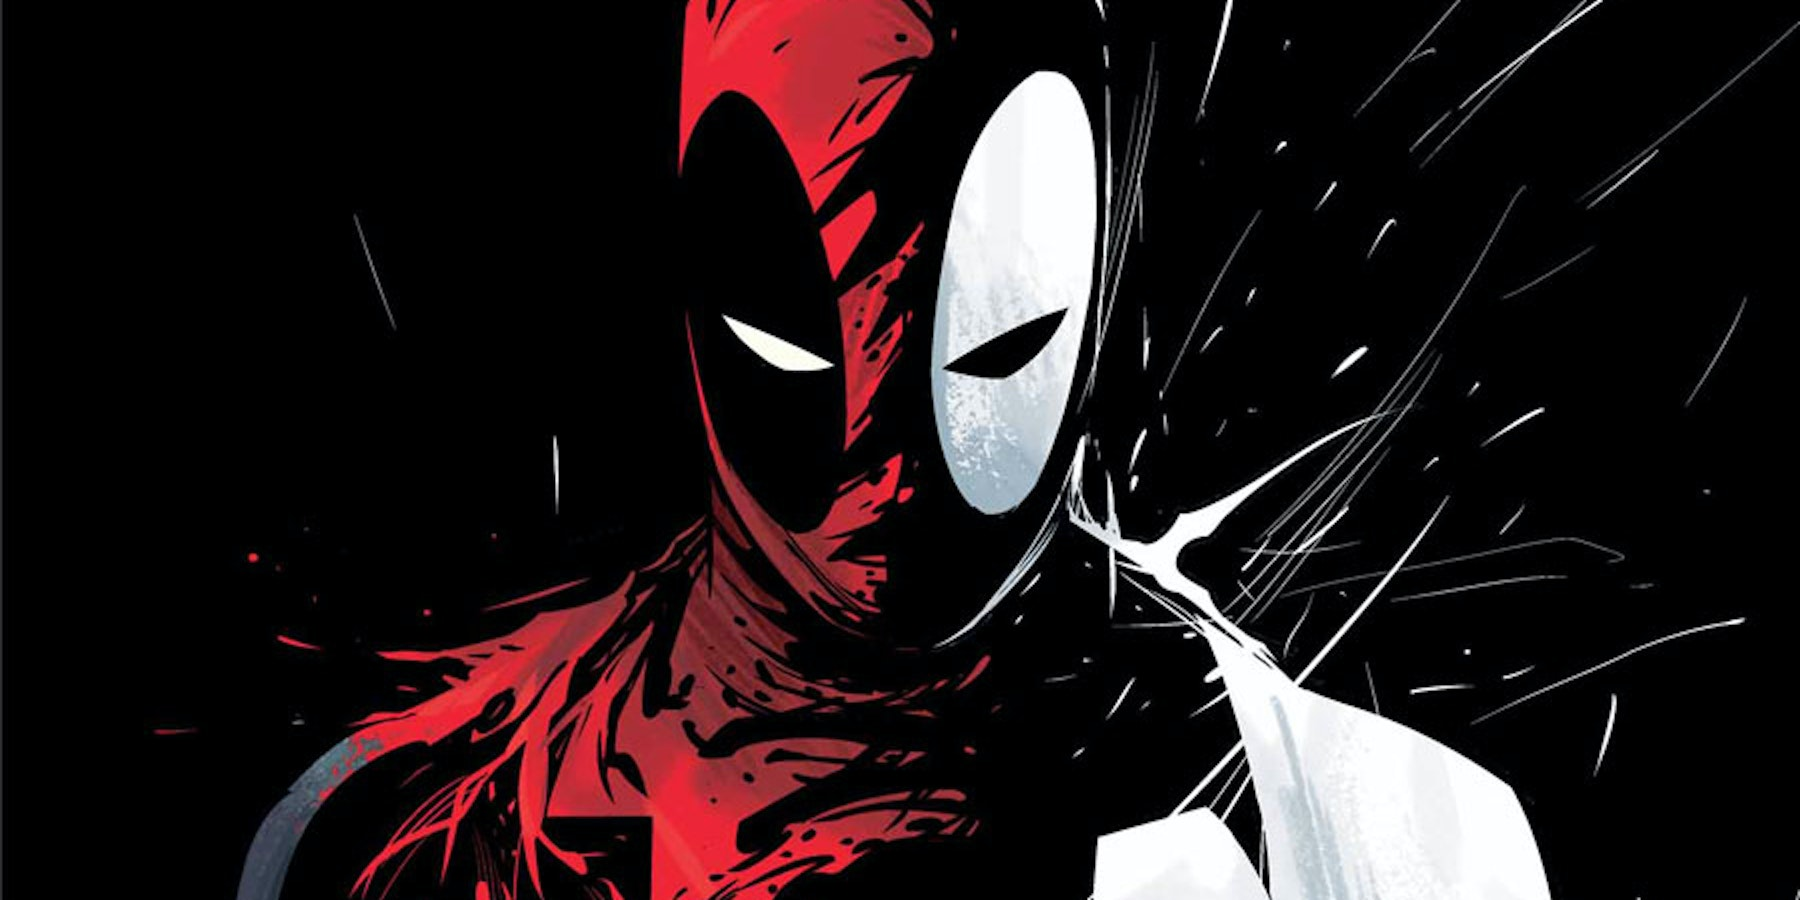 20166 Deadpool Venom Symbiote Outfit likewise Nfl Playoffs 2017 Schedule moreover Star Wars Rogue One Cast furthermore Mugulu furthermore Acknowledge outstanding performance cert 587. on oscar new format